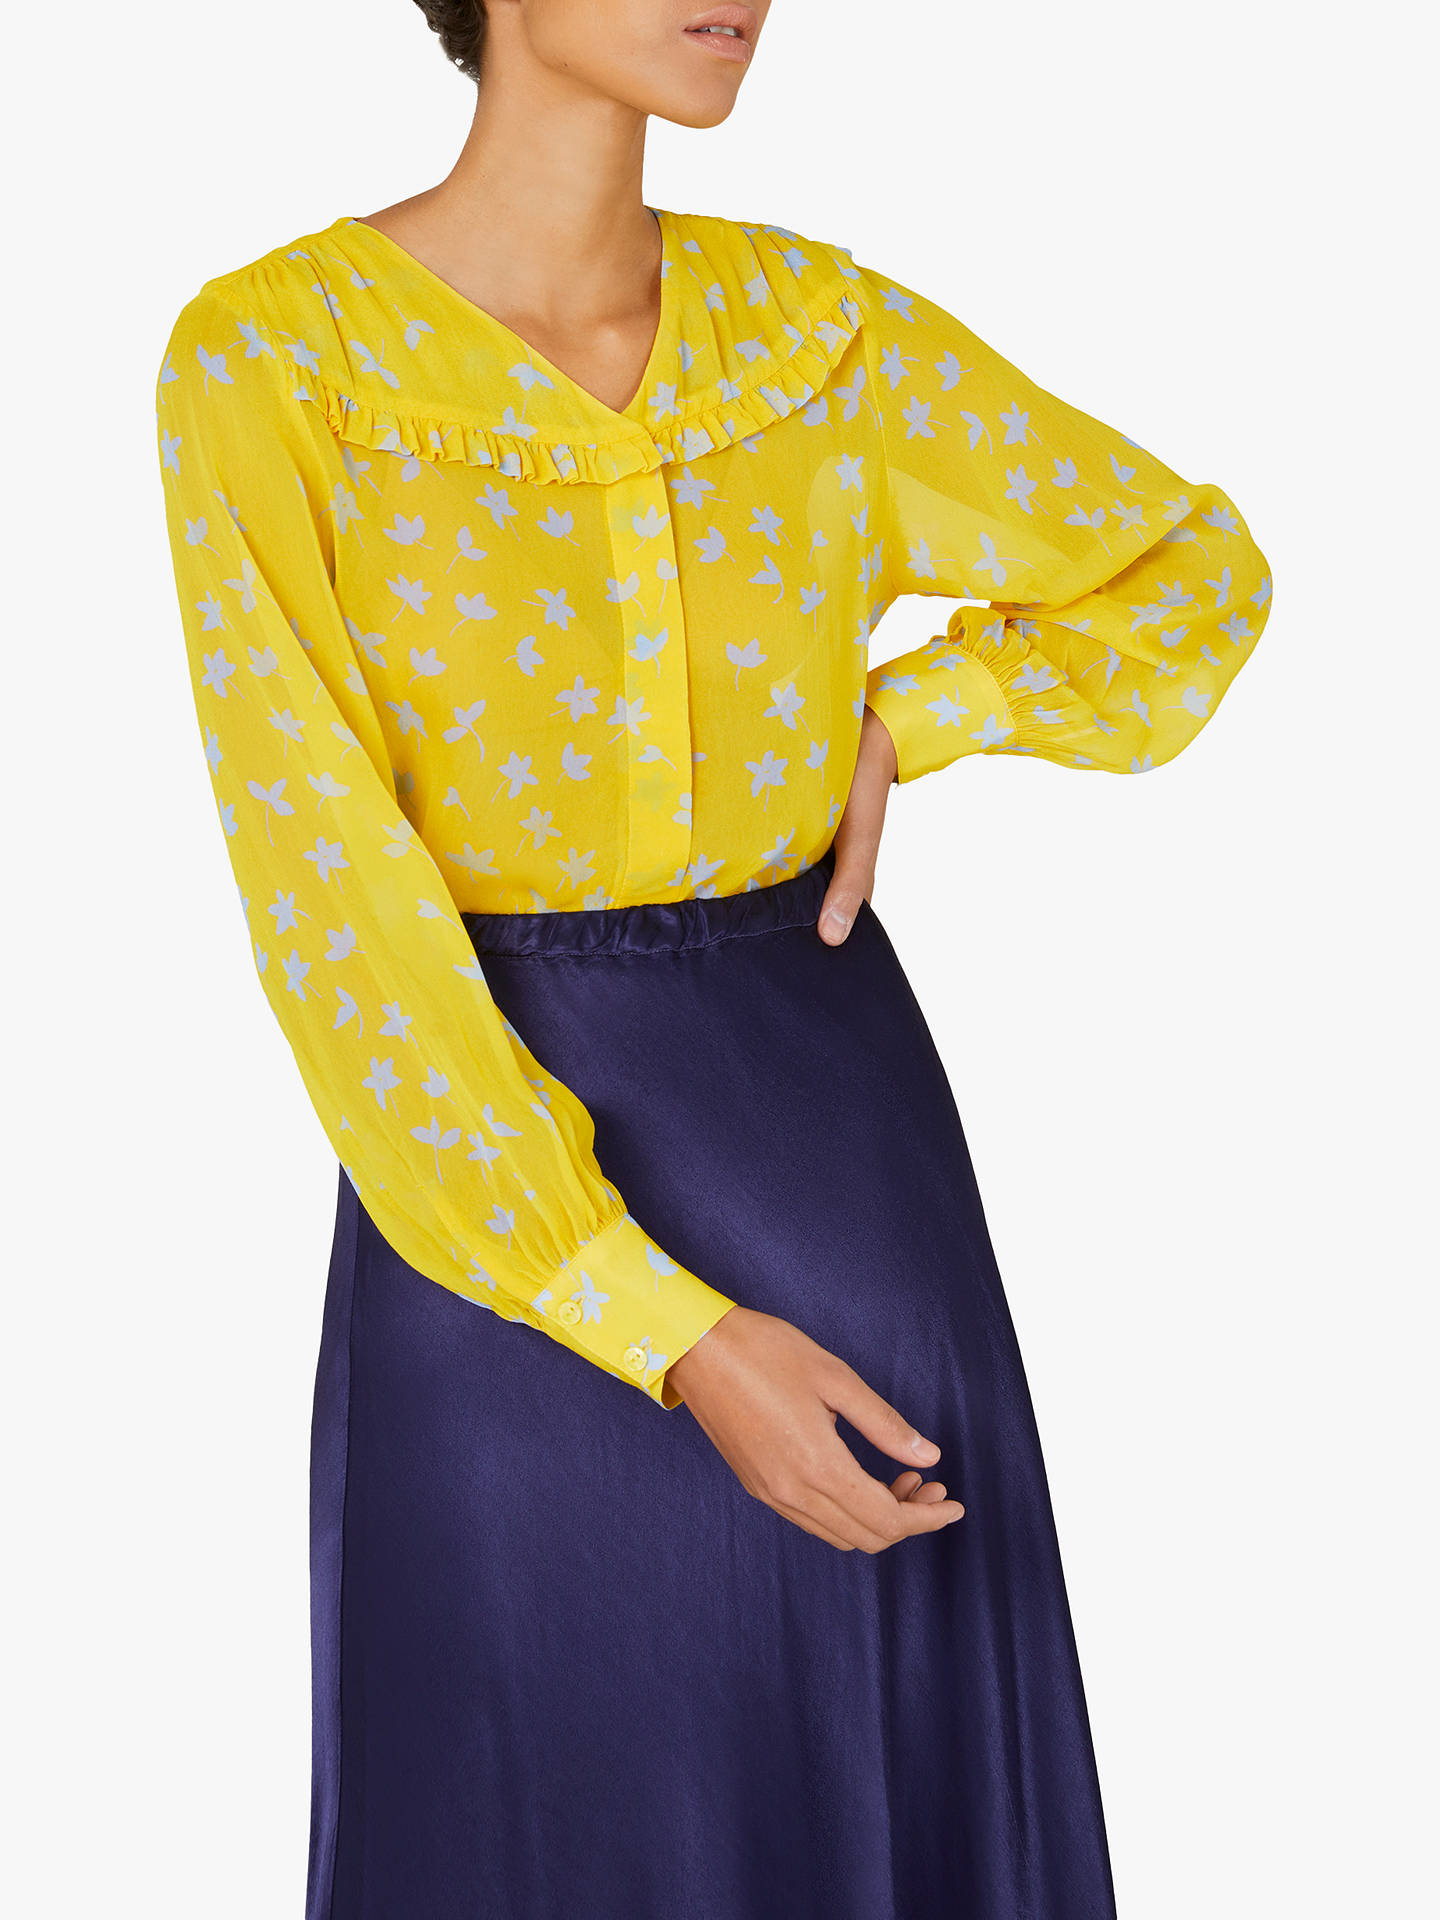 Finery Hayley Floral Frill Shirt, Yellow by Finery